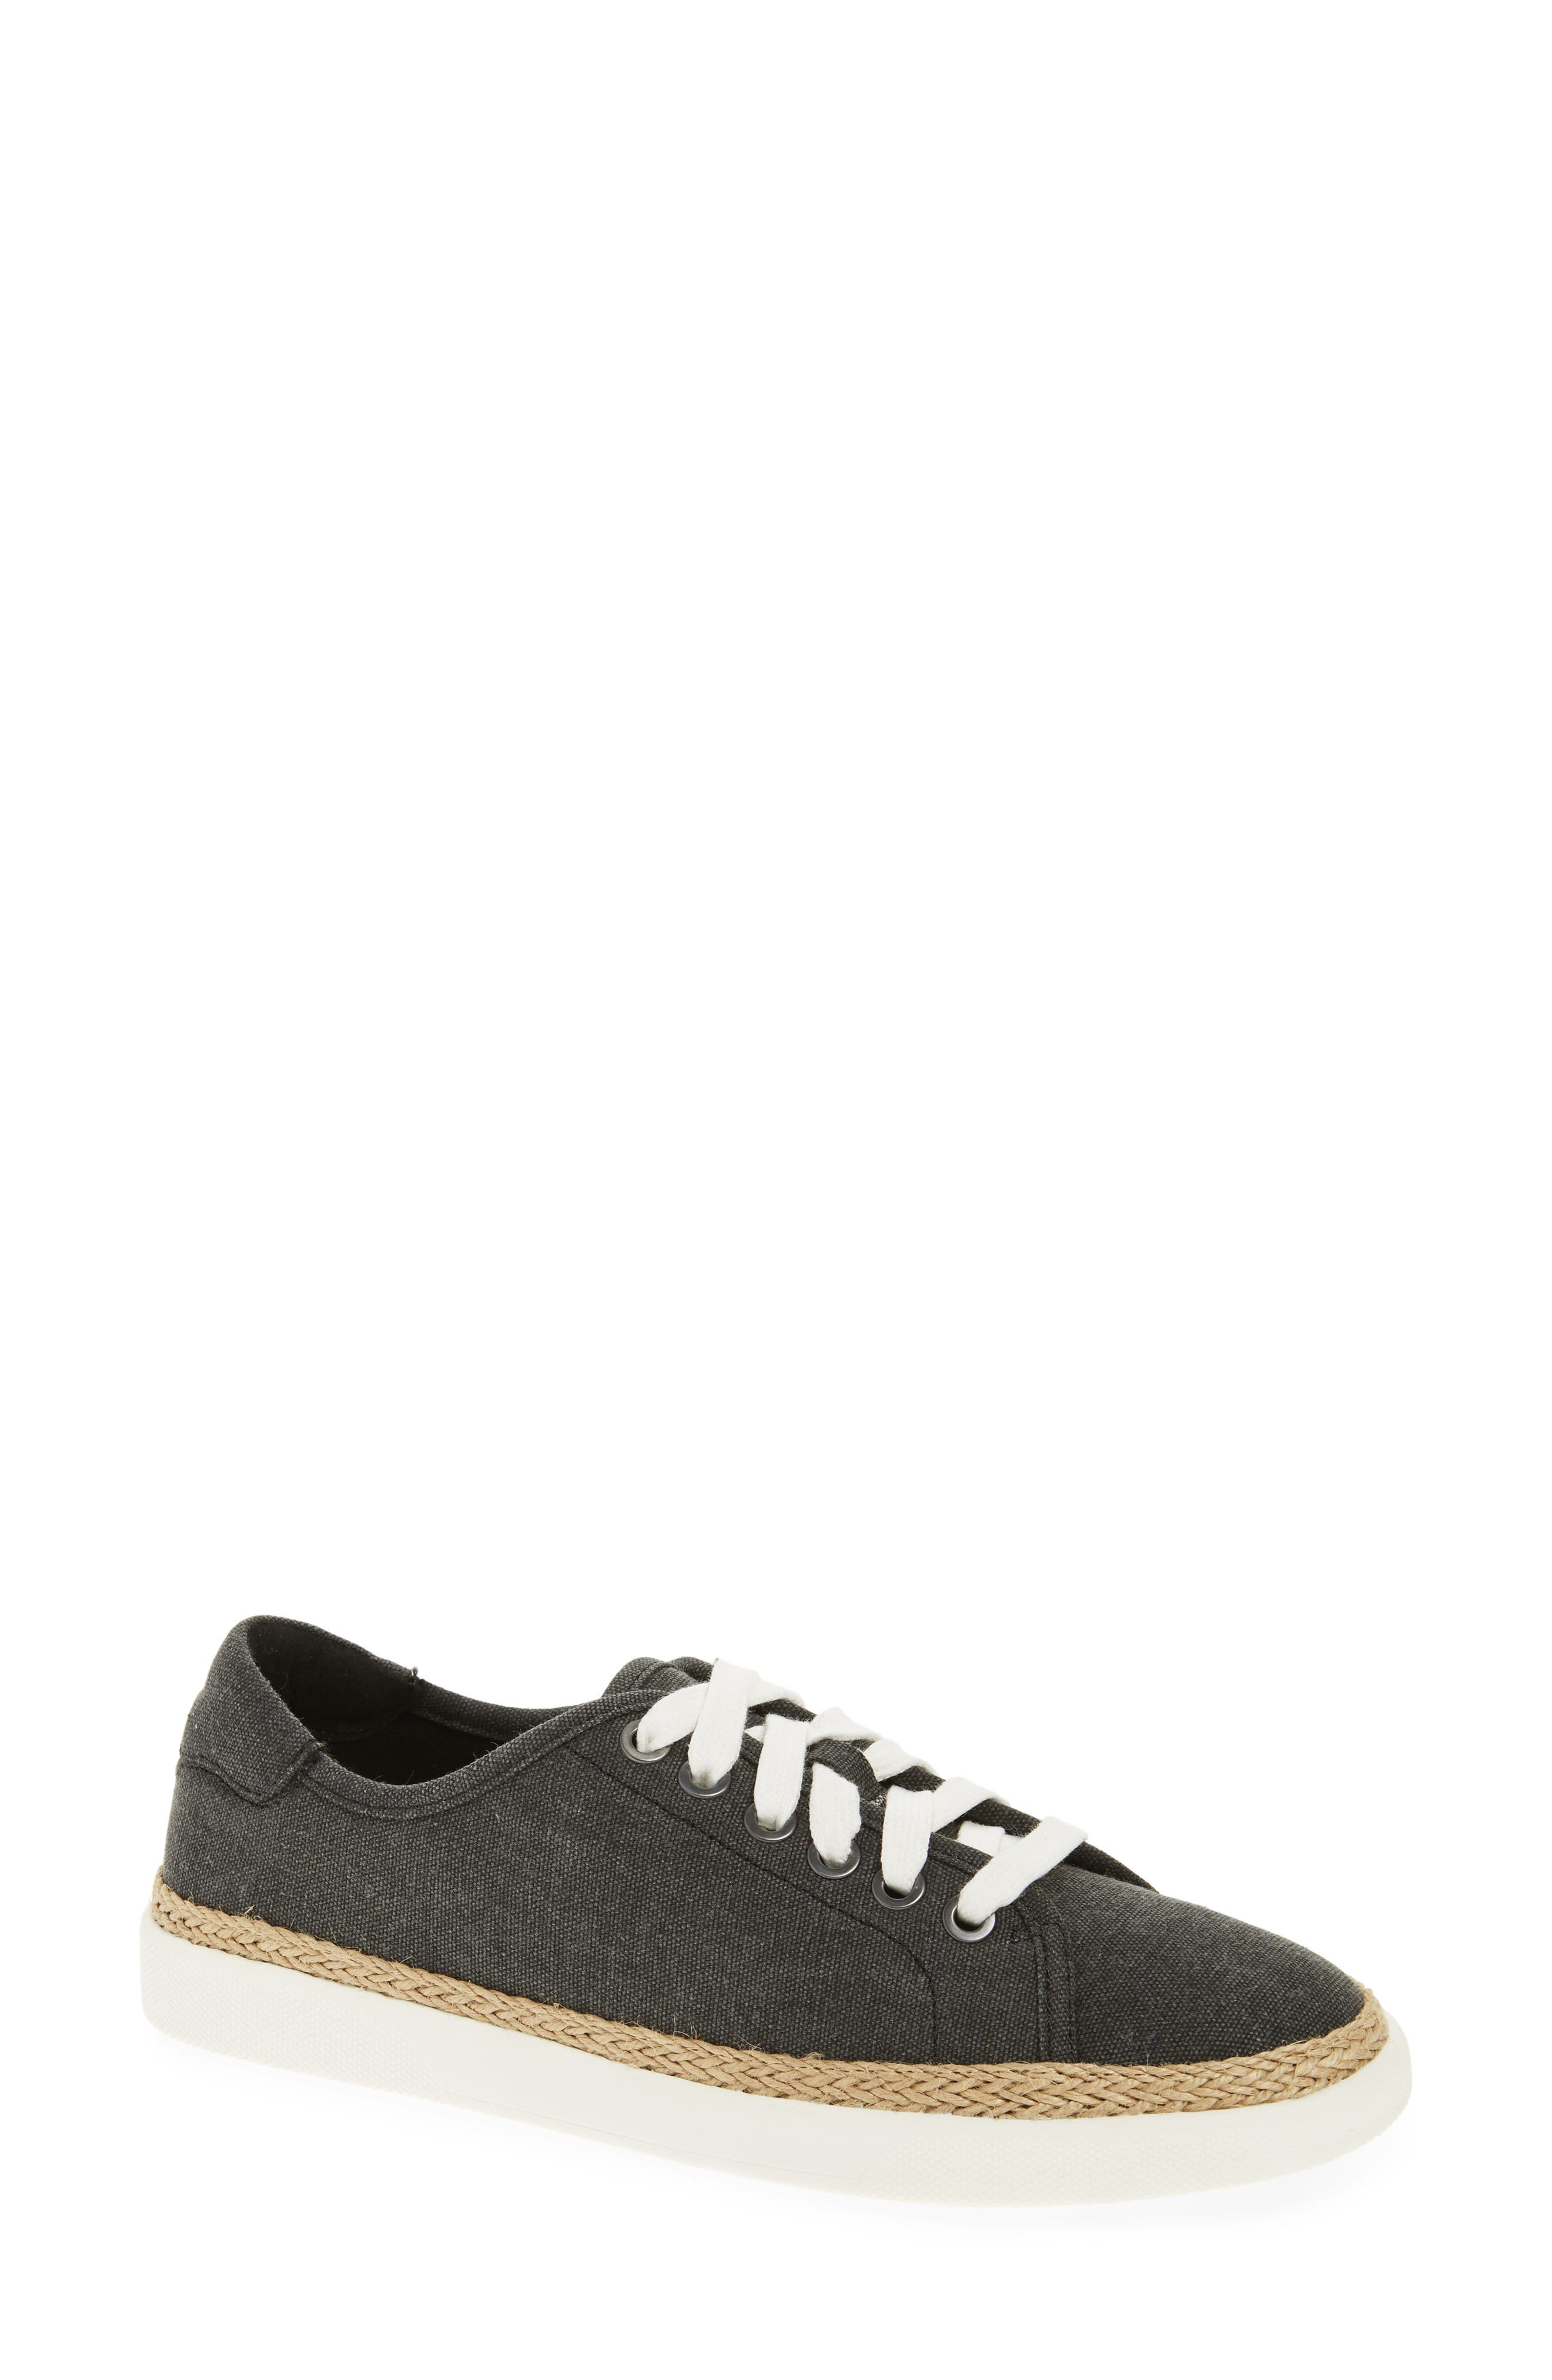 Hattie Sneaker,                             Main thumbnail 1, color,                             Black Canvas